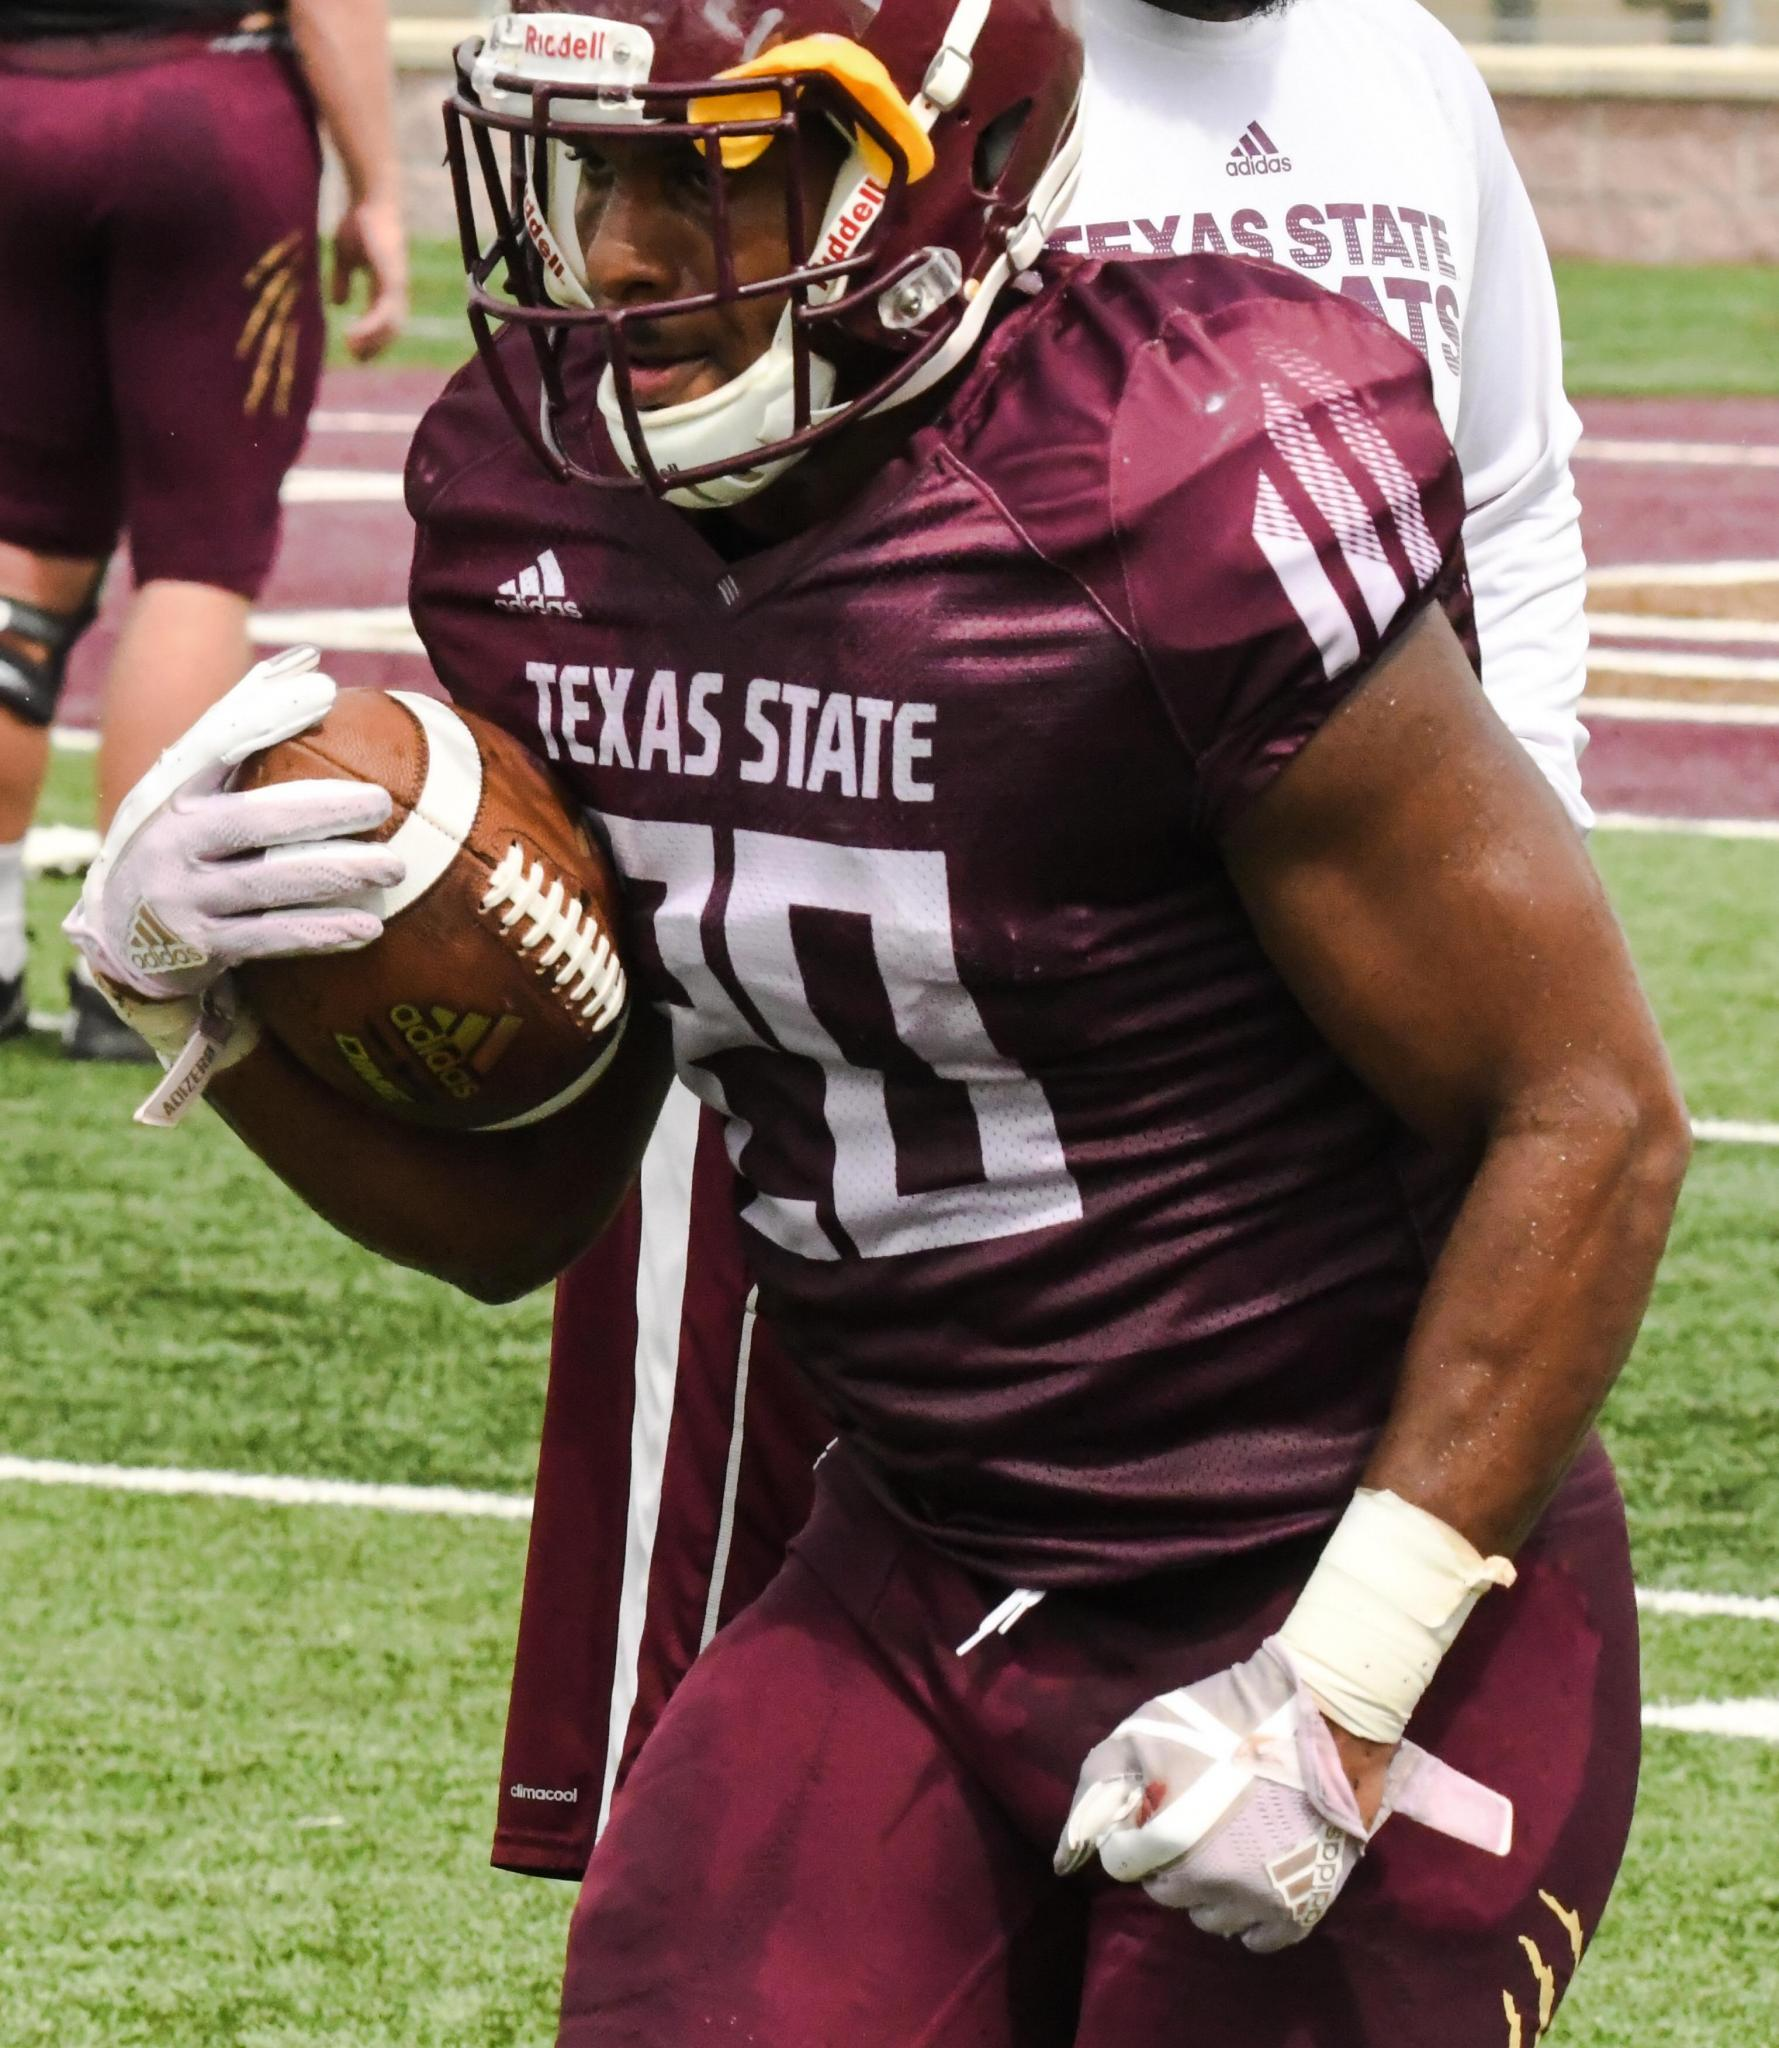 Sophomore running back Robert Brown, Jr. rushes during Texas State's scrimmage on Saturday.